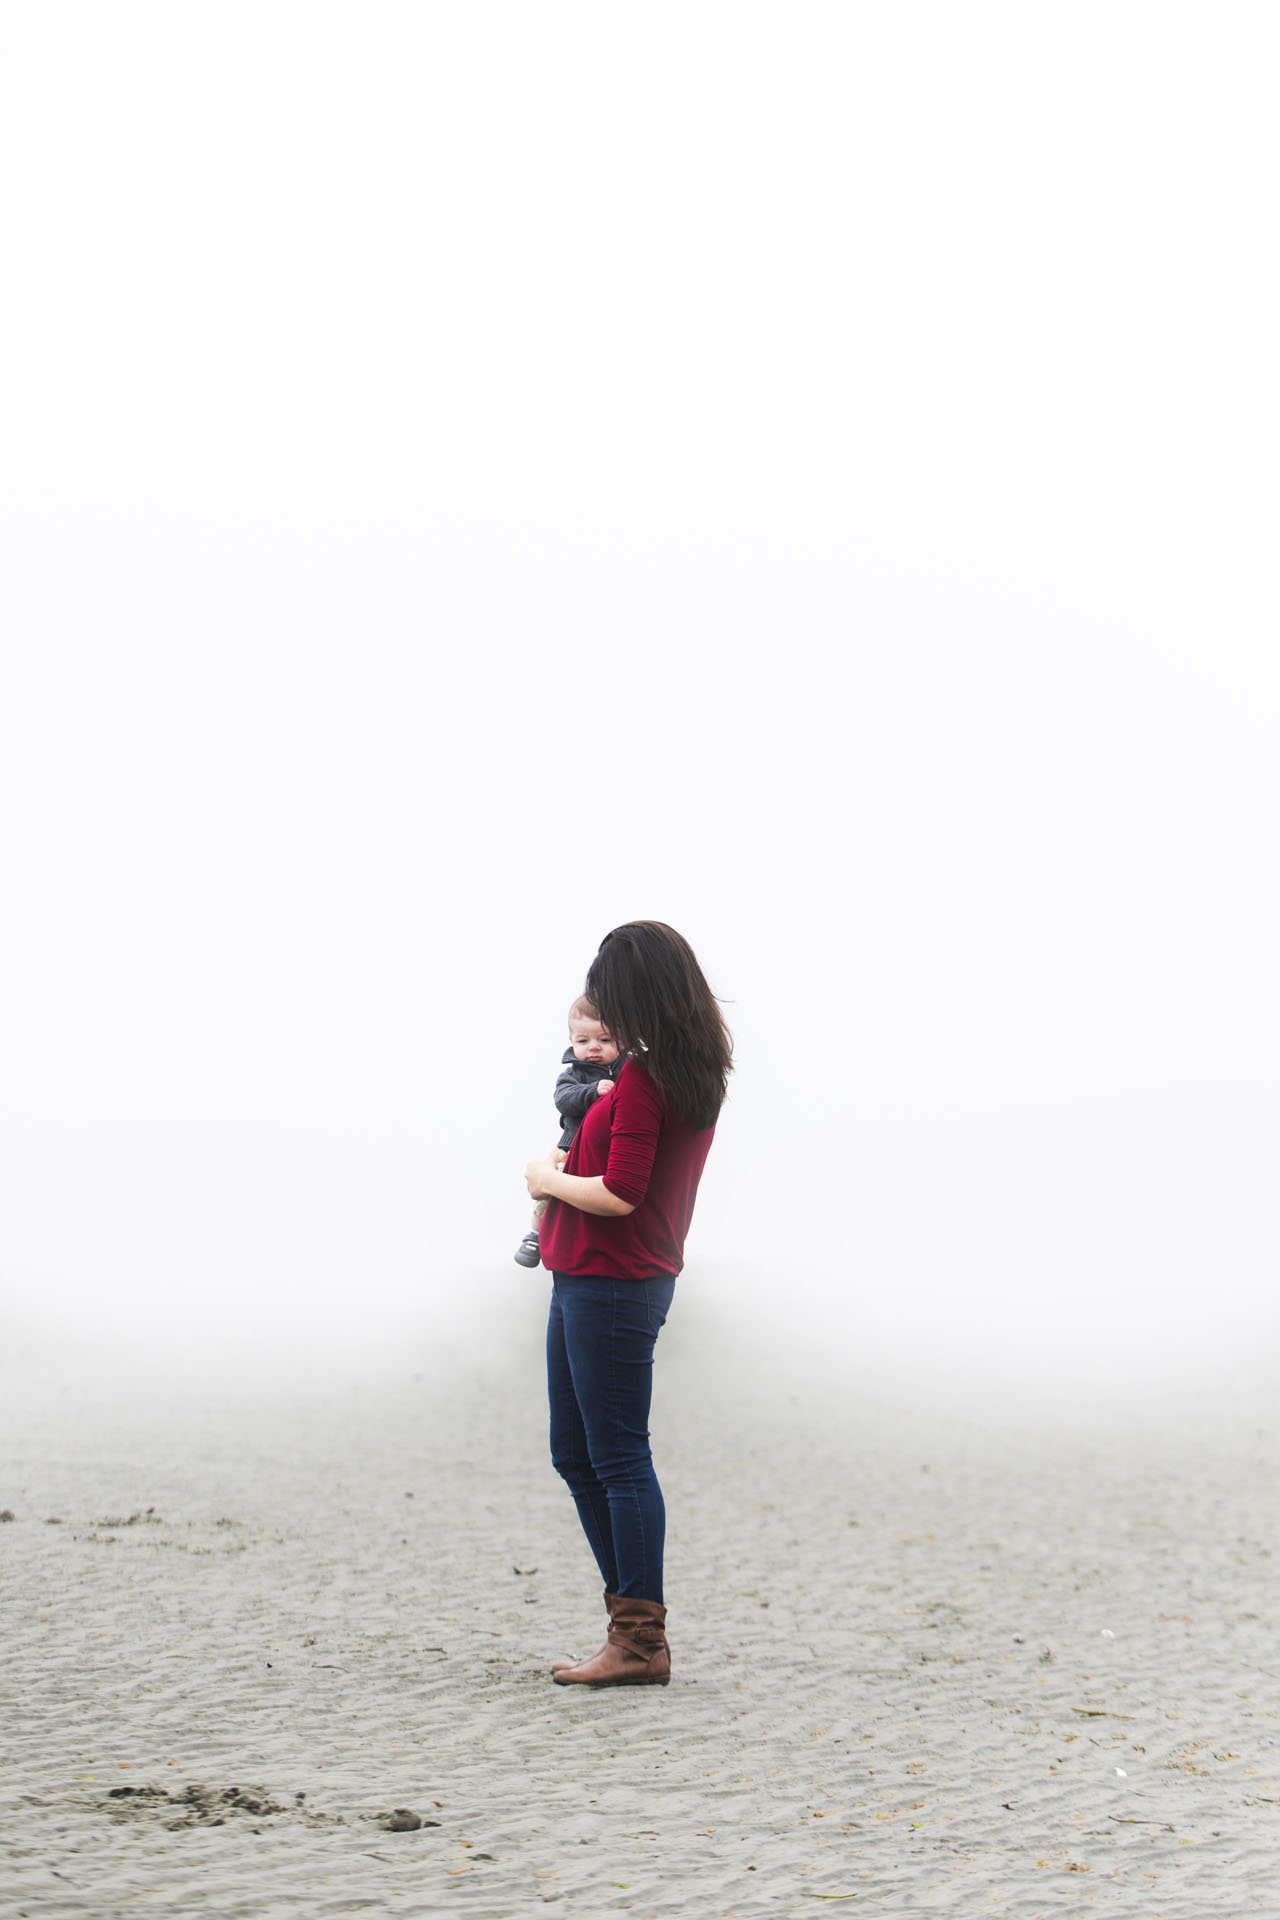 Photo of Mother and Child on Qualicum Beach in fog